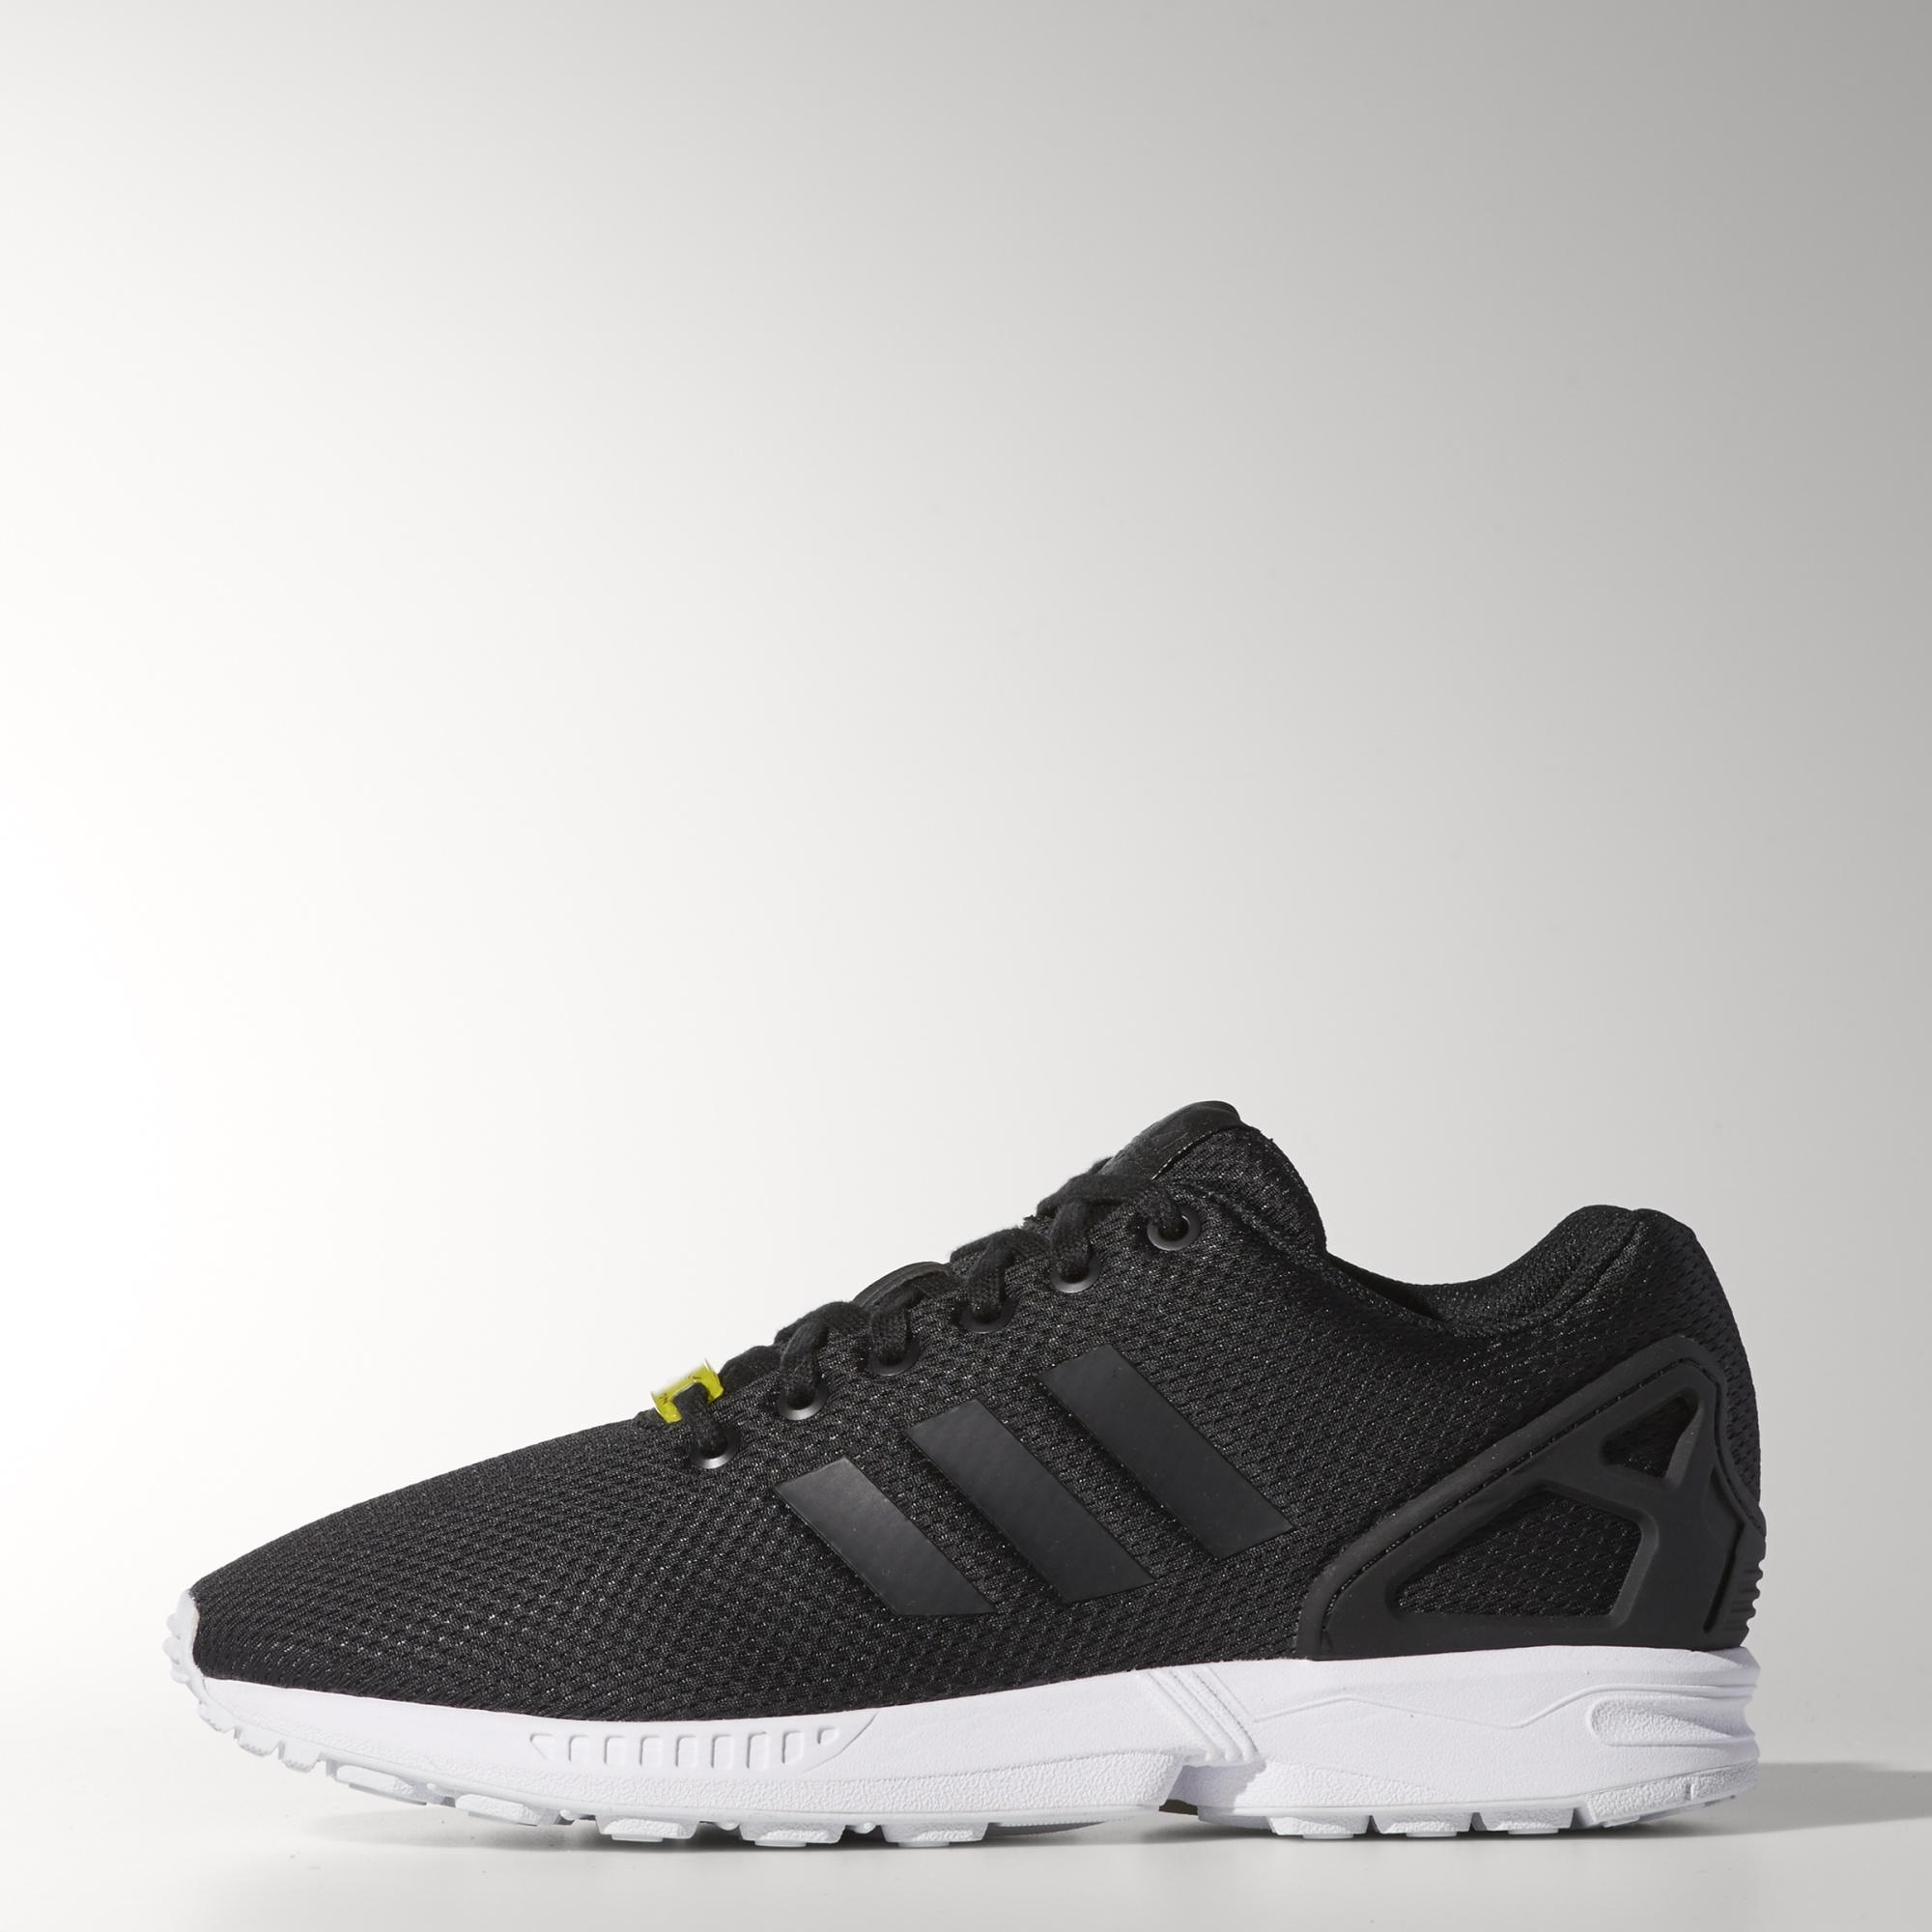 Adidas Flux Black And White